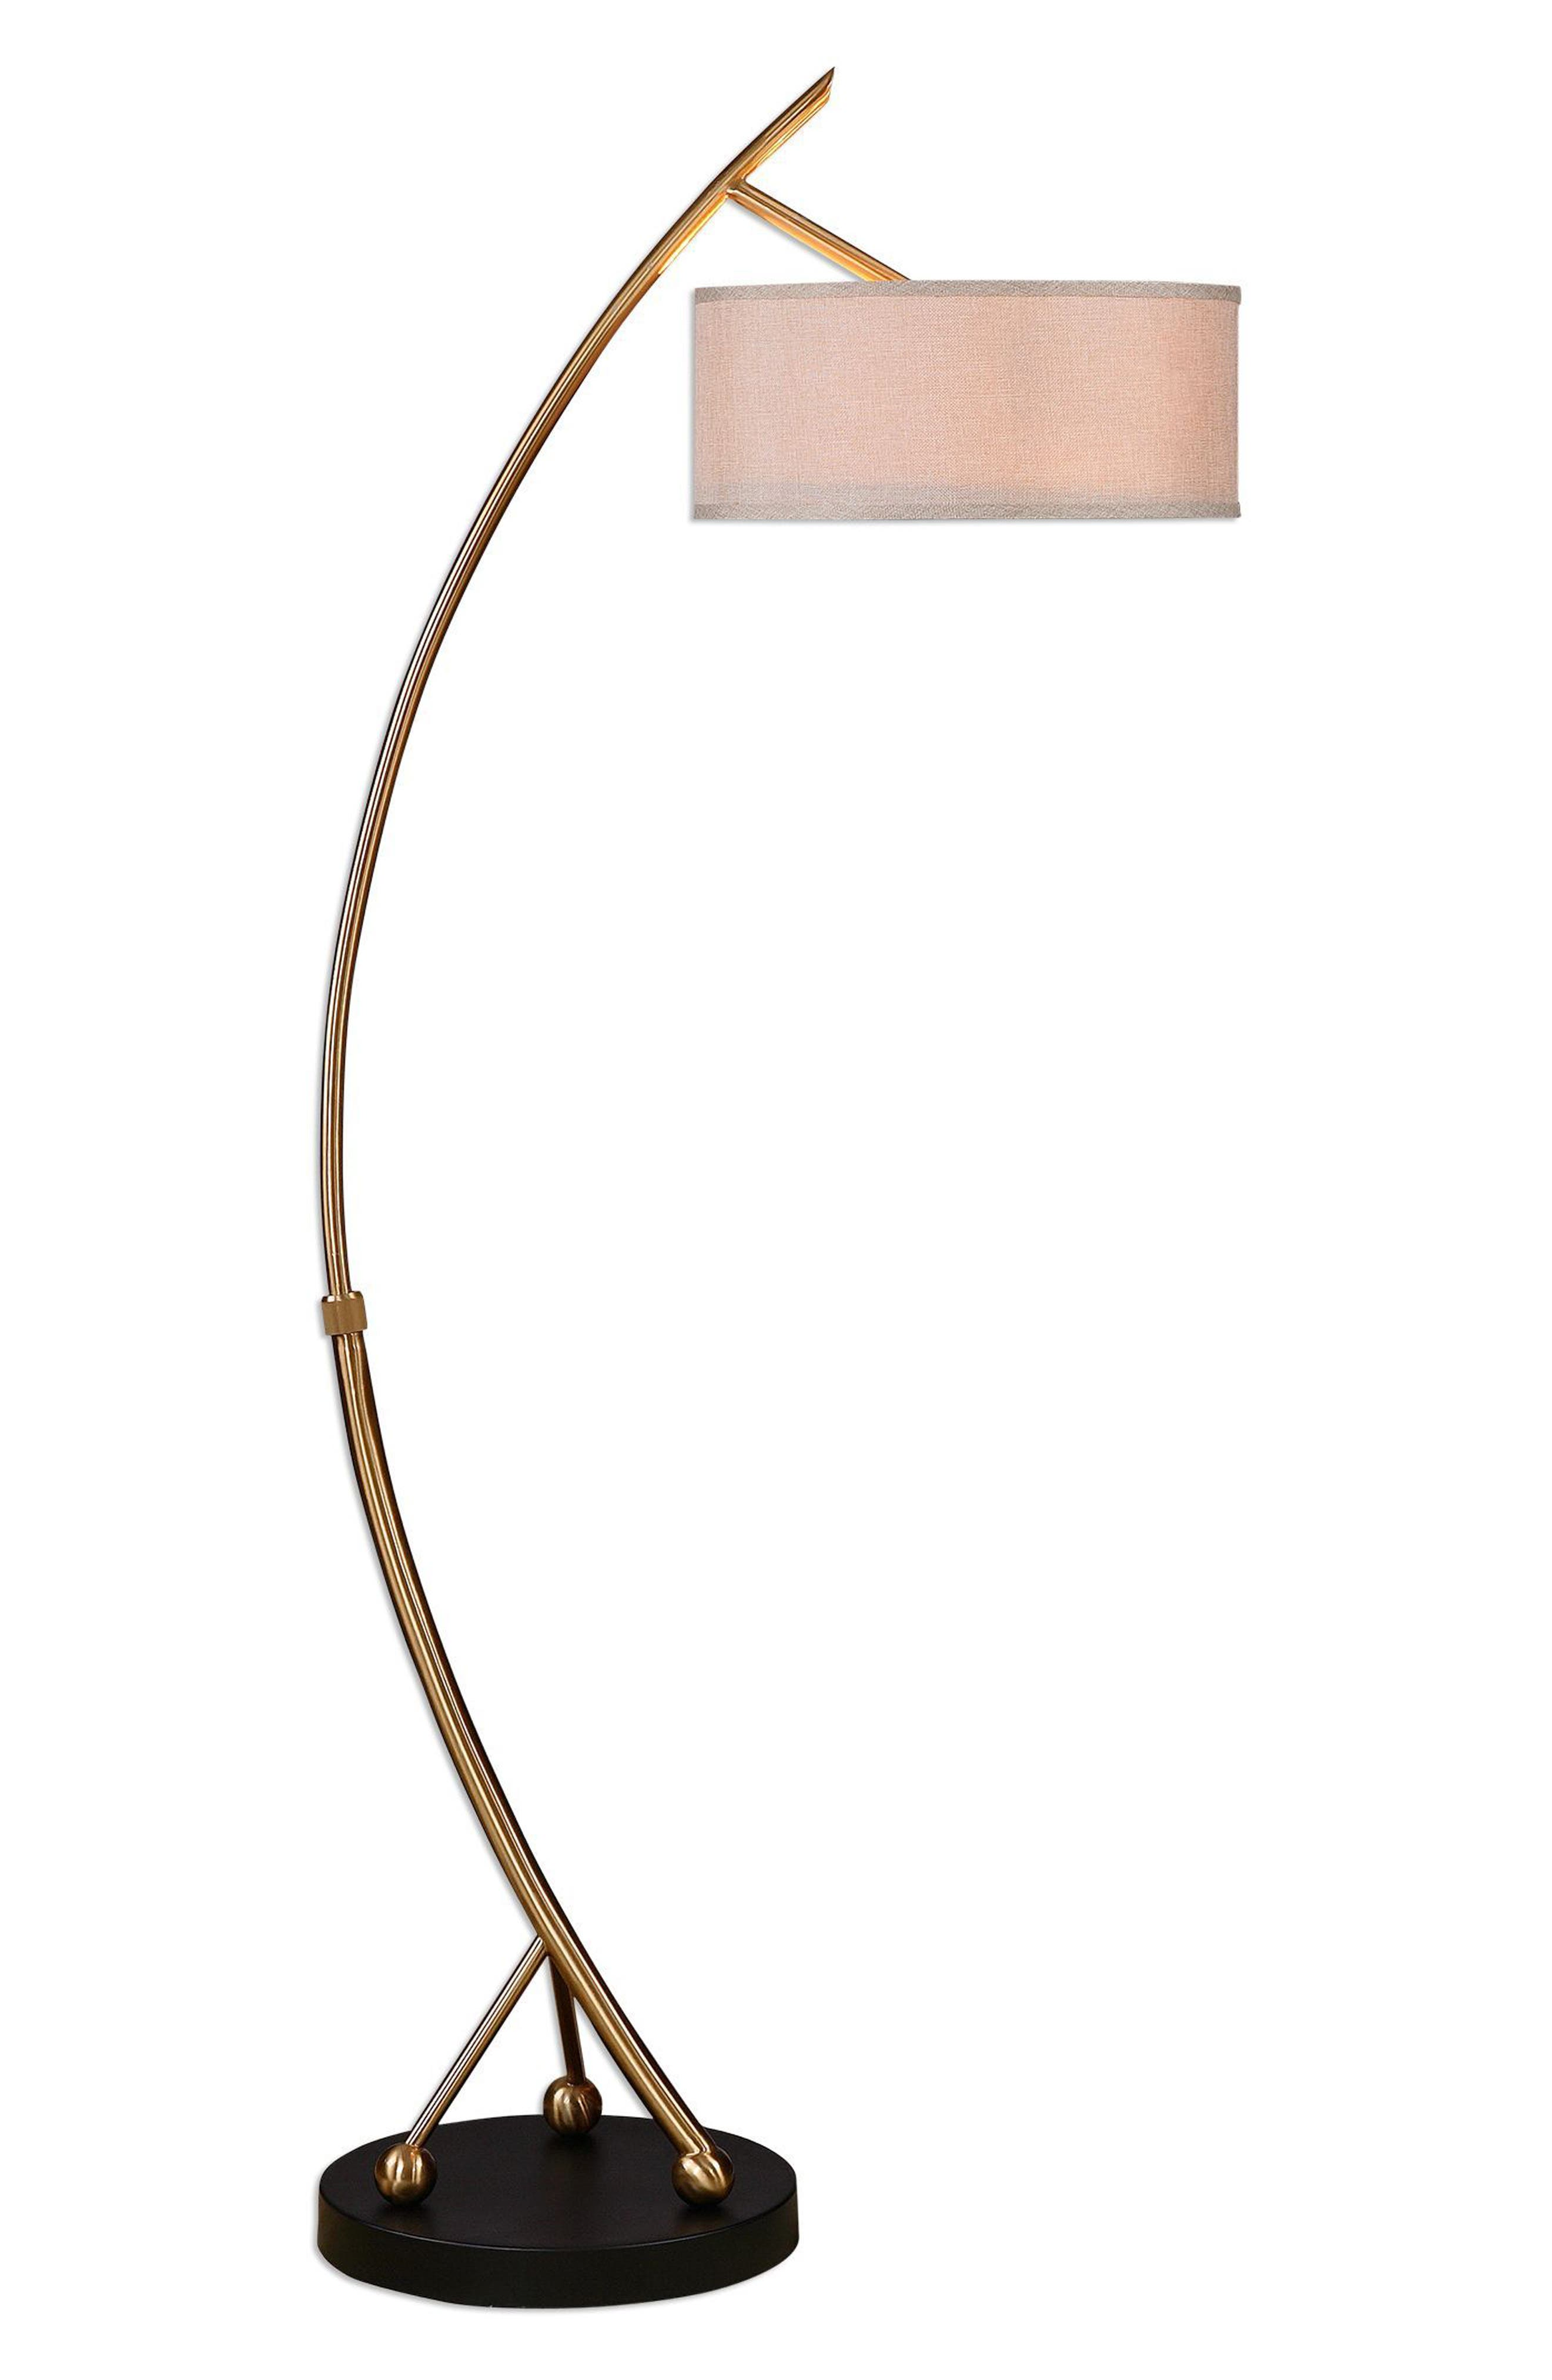 Main Image - Uttermost Vardar Floor Lamp